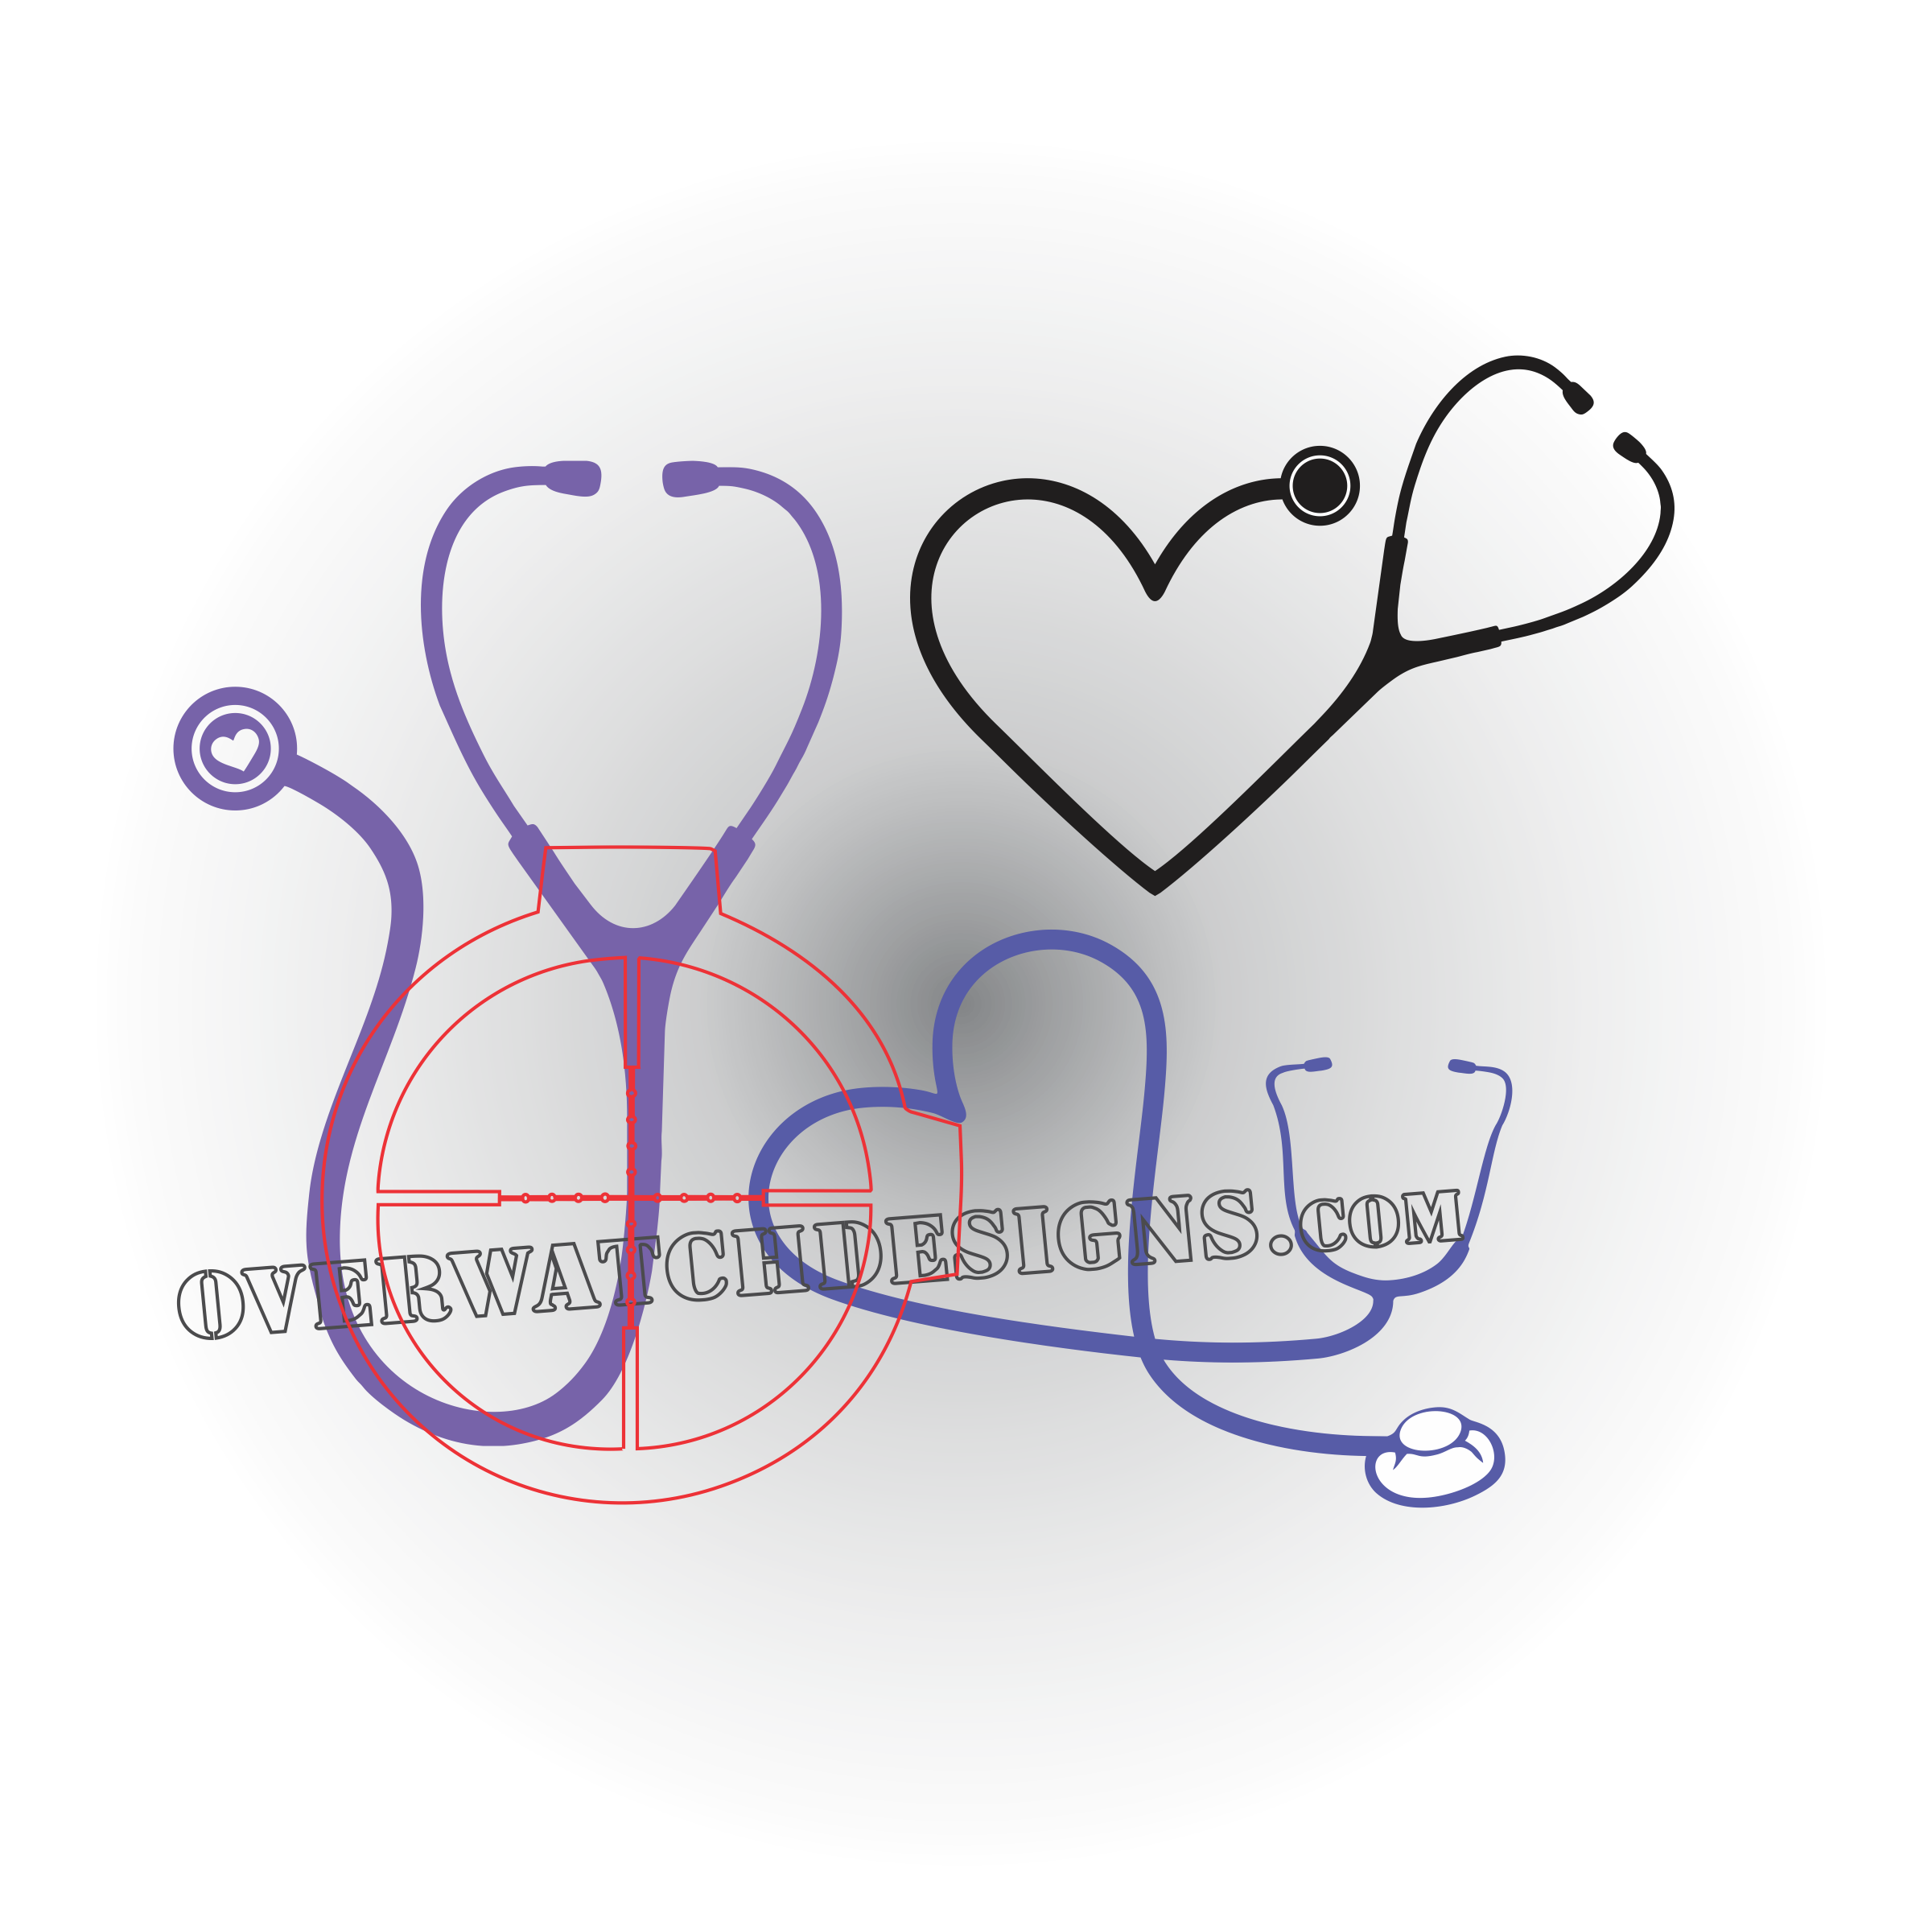 Heartbeat clipart emt. Stethoscope decal overwatch designs